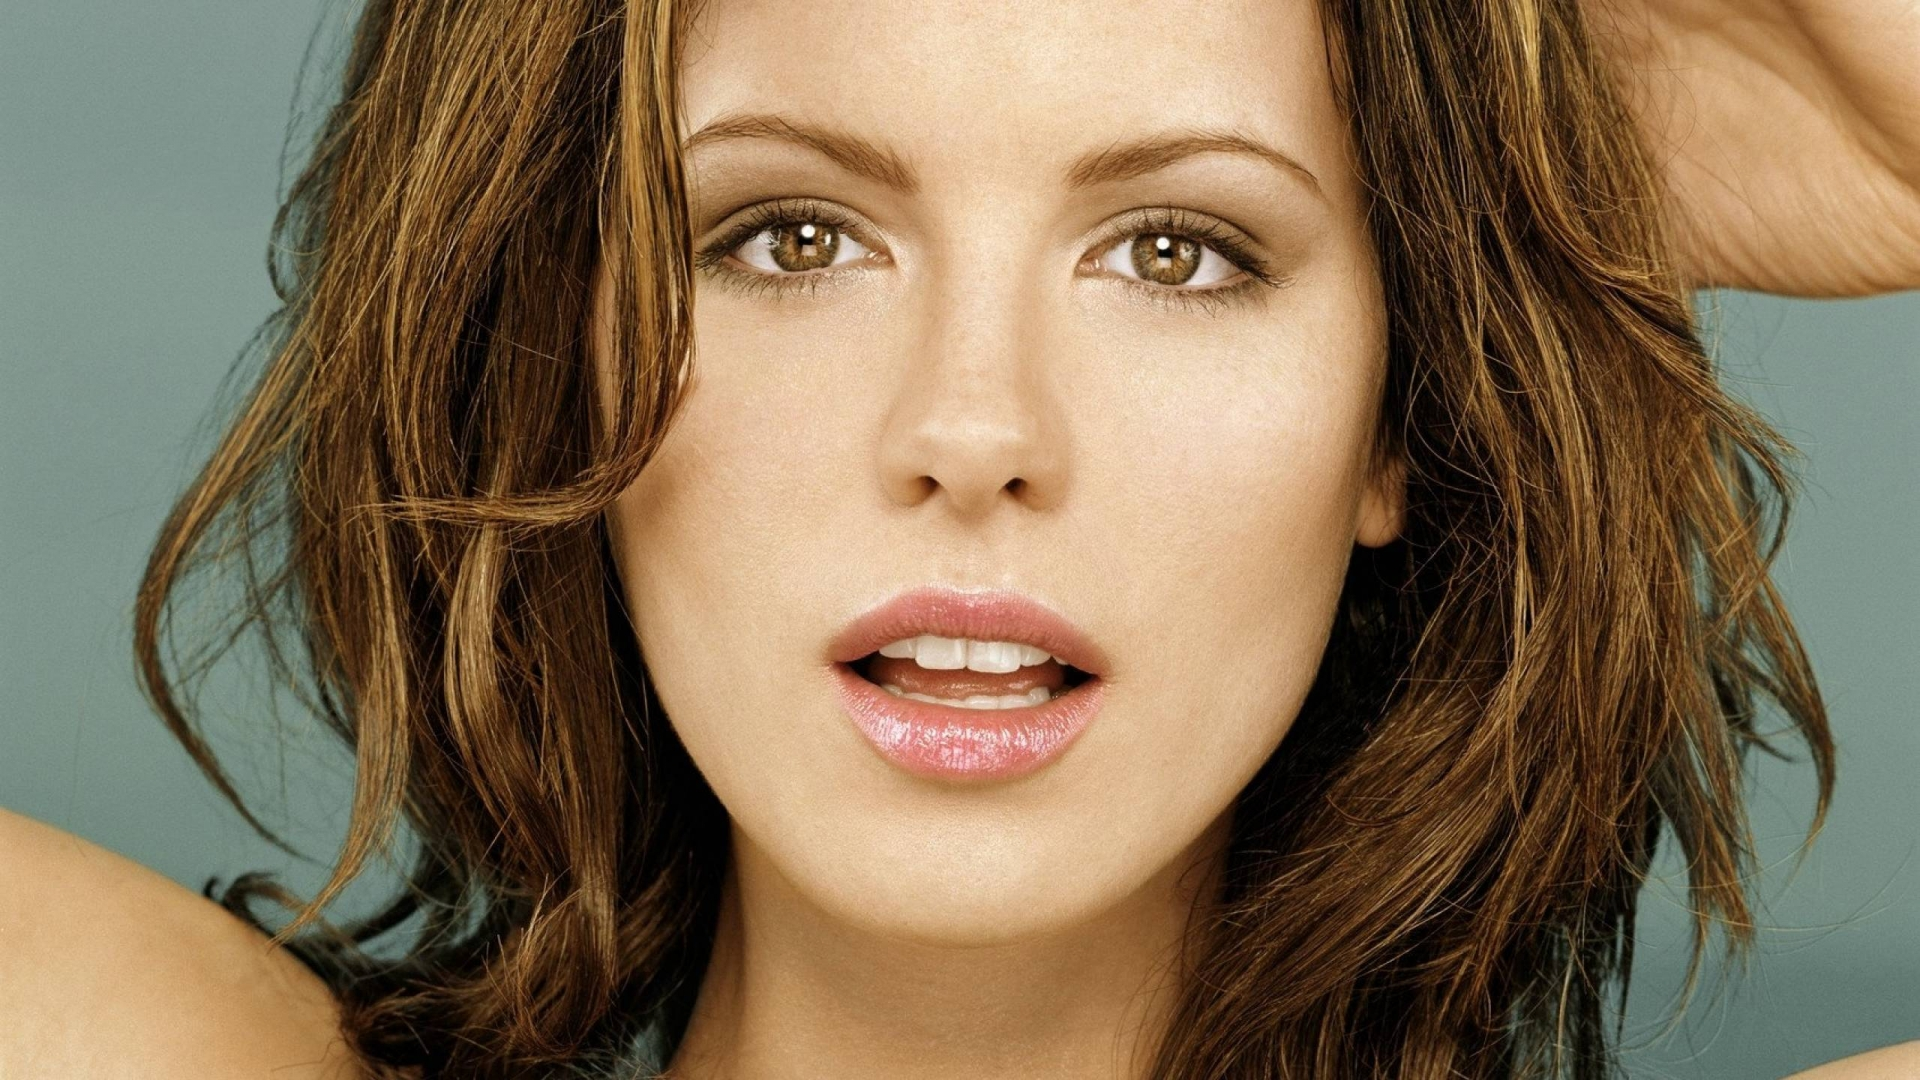 Kate Beckinsale Close Up for 1920 x 1080 HDTV 1080p resolution